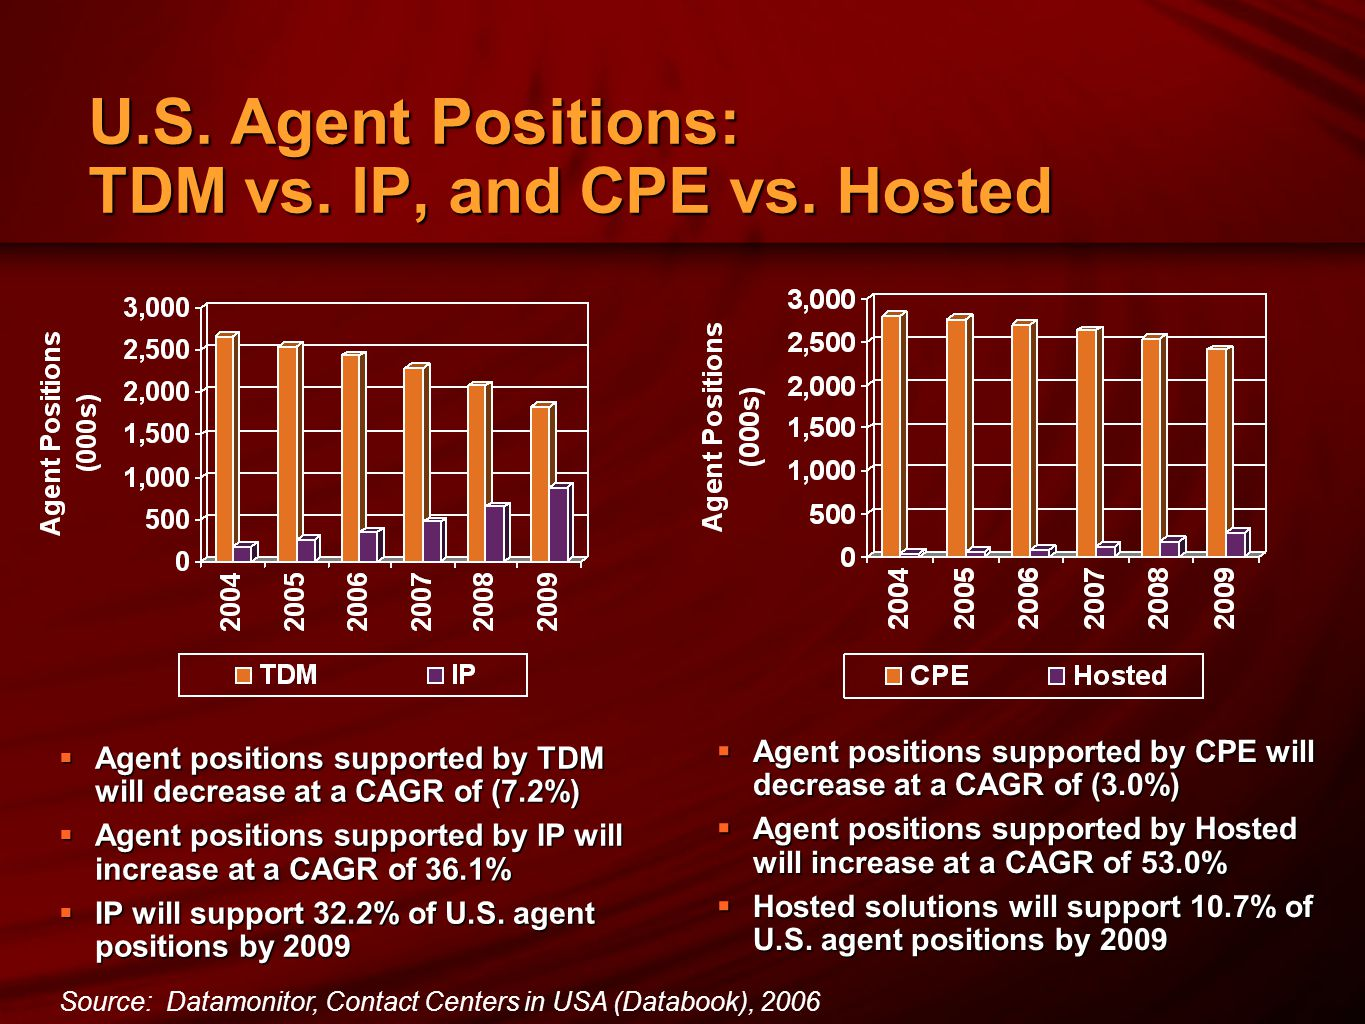 U.S. Agent Positions: TDM vs. IP, and CPE vs.